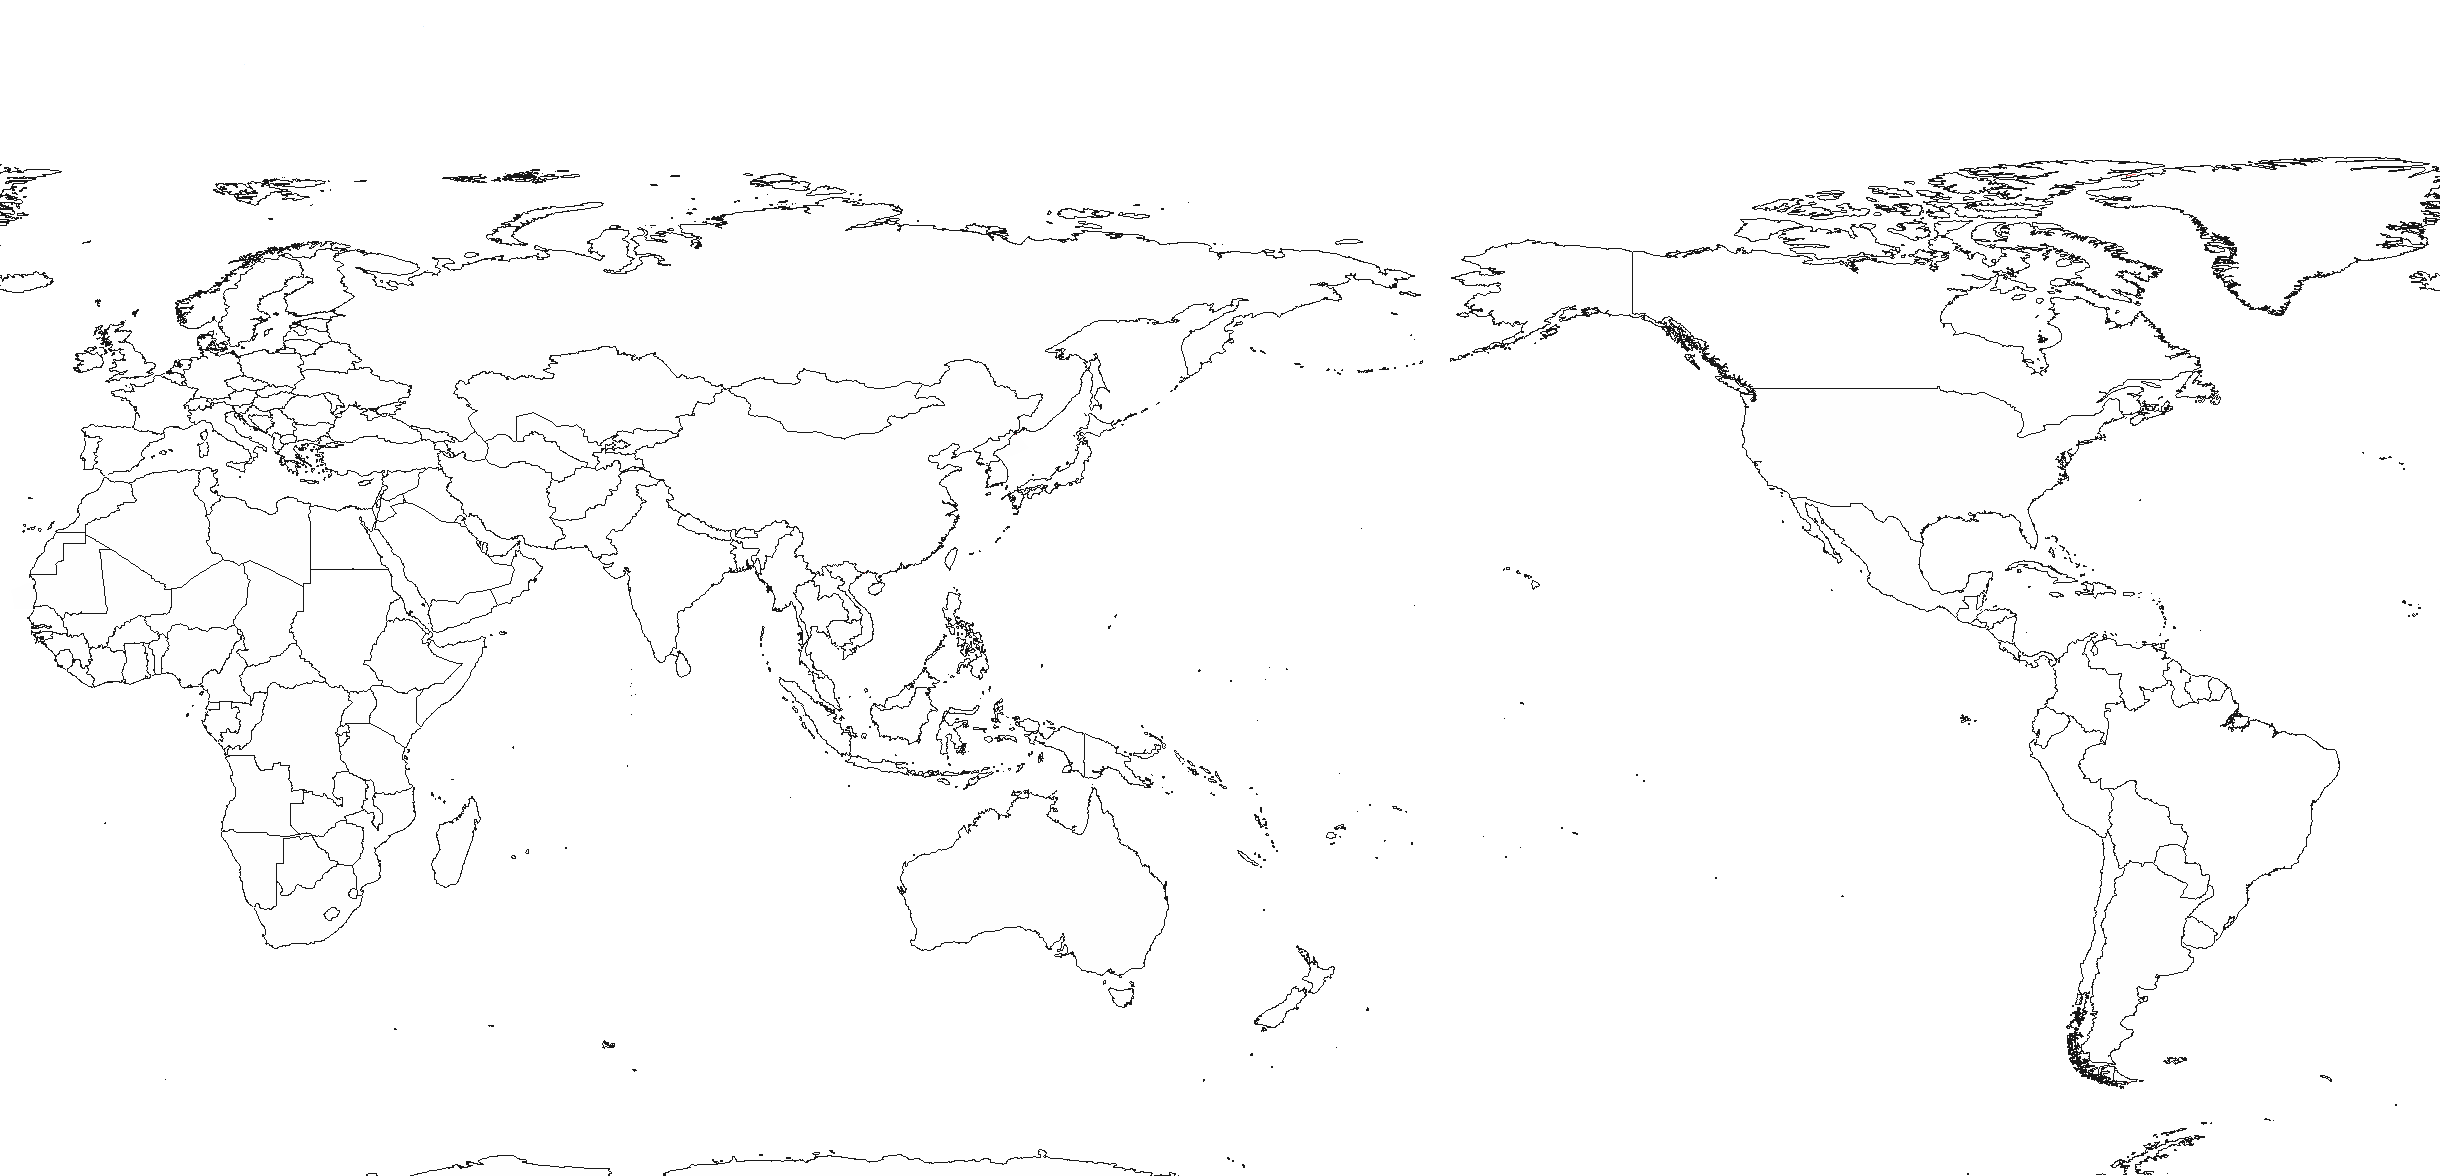 FileWhite World MapPacficcentered Blankpng Wikimedia Commons - Blankpacific us map